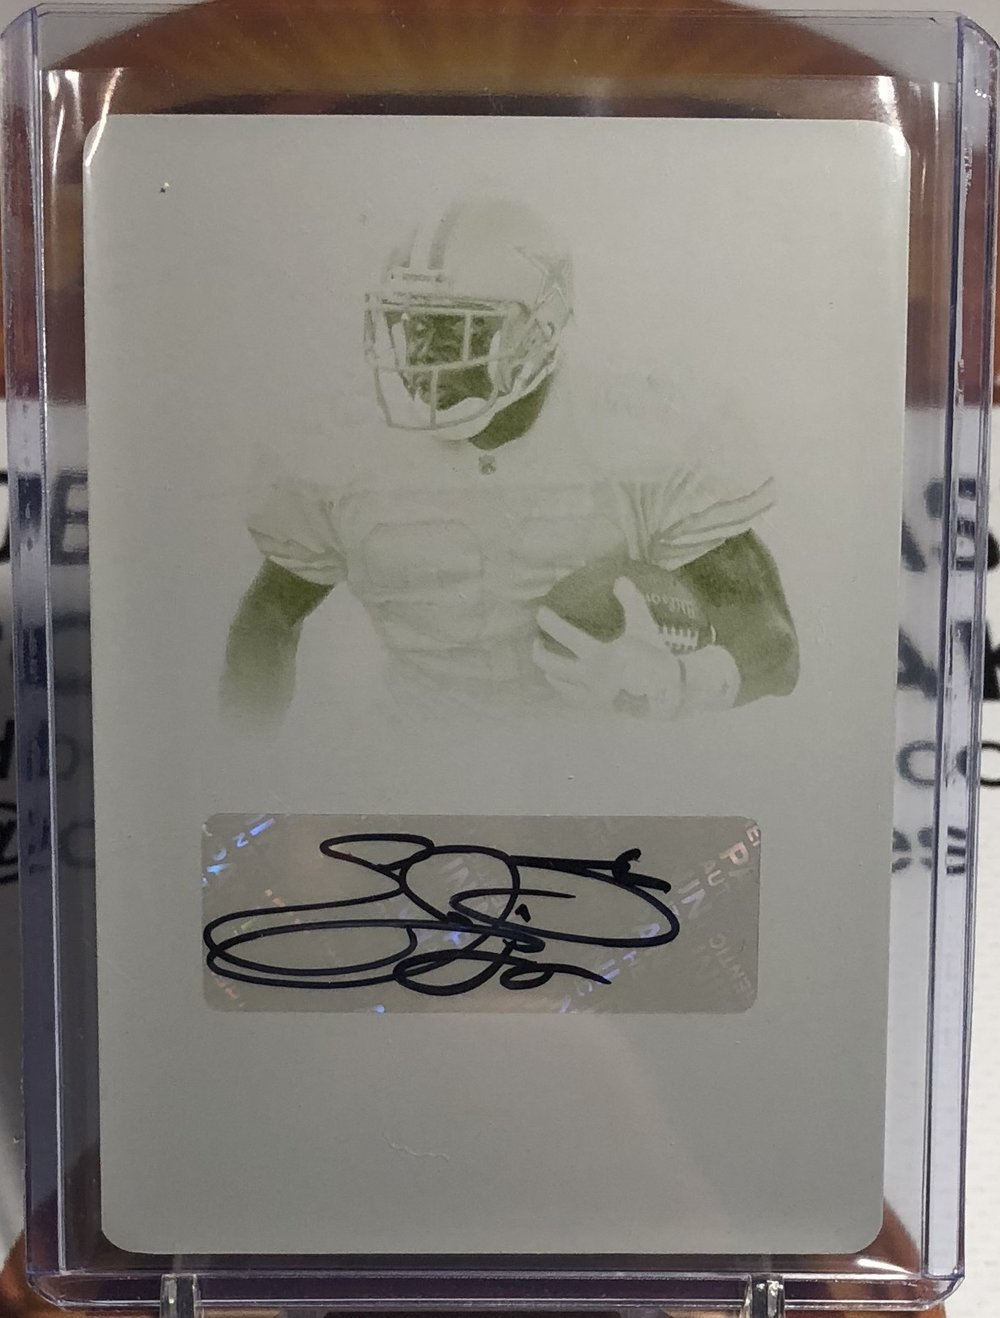 2017 Panini National Treasures Emmitt Smith Printing Plate Auto 1/1